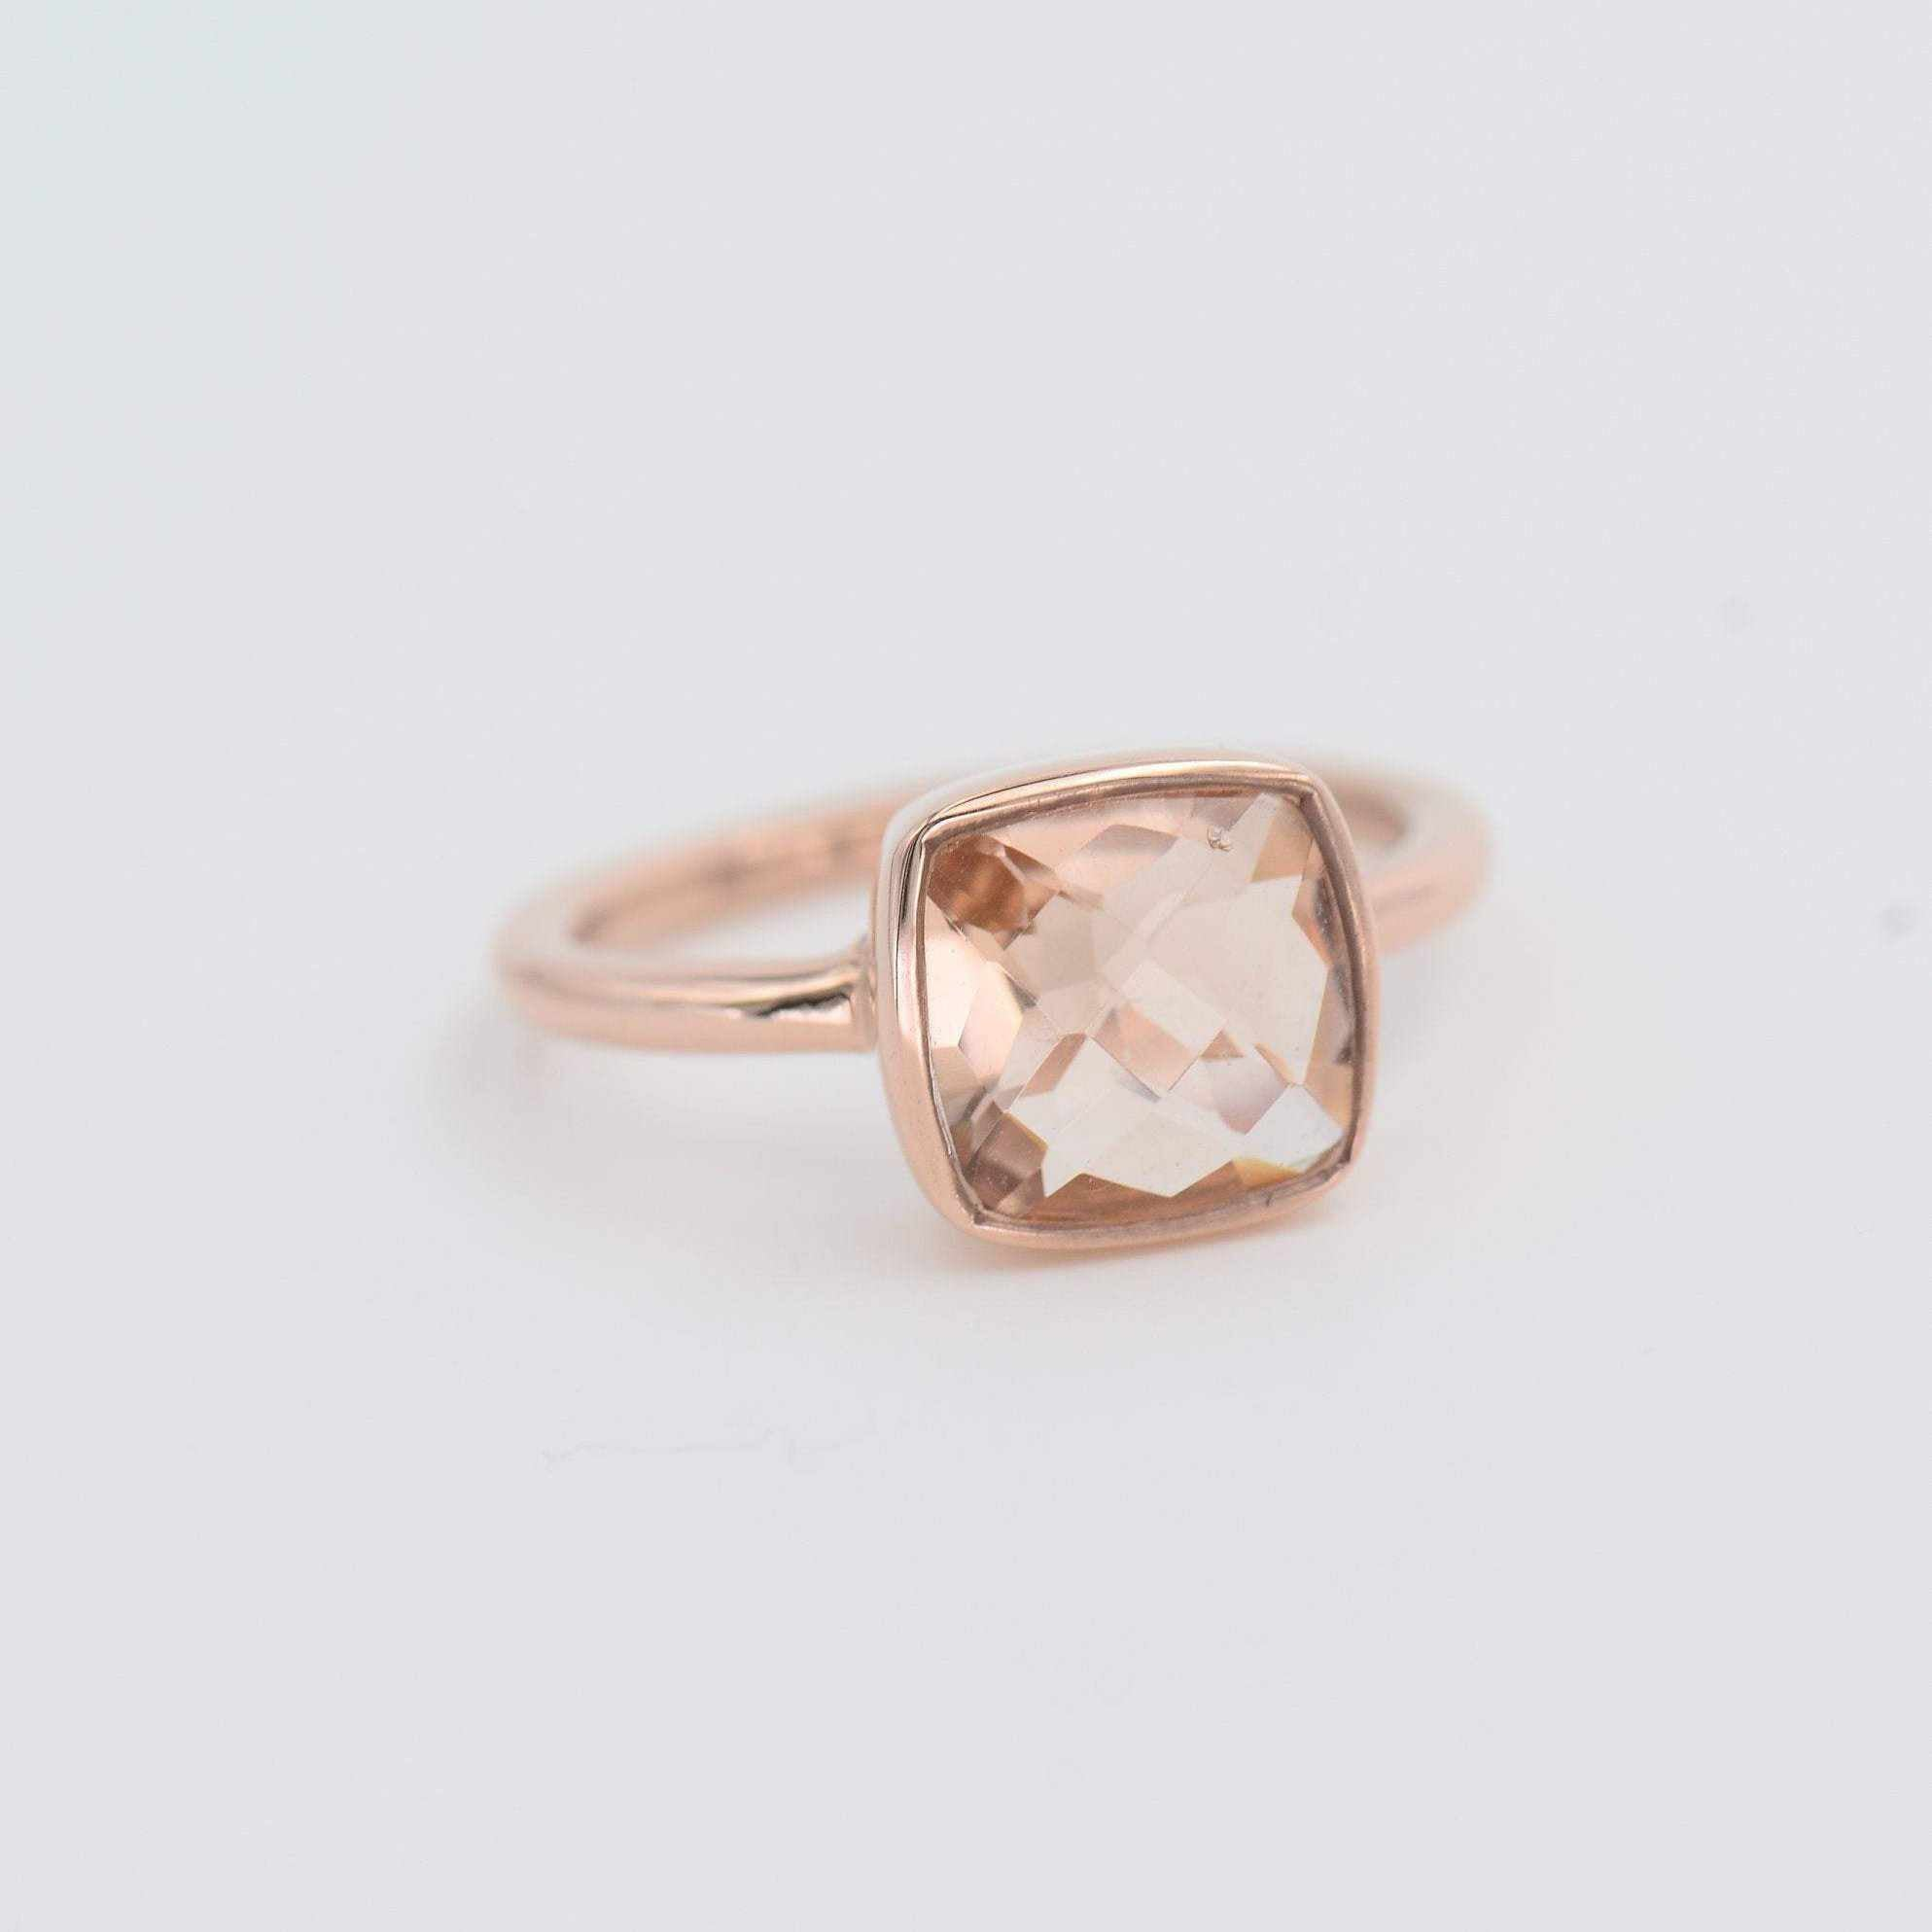 Morganite ring, Cushion Gemstone ring, Rose gold Morganite ring, Square Shape Stackable ring, Peach color stone ring, Everyday ring